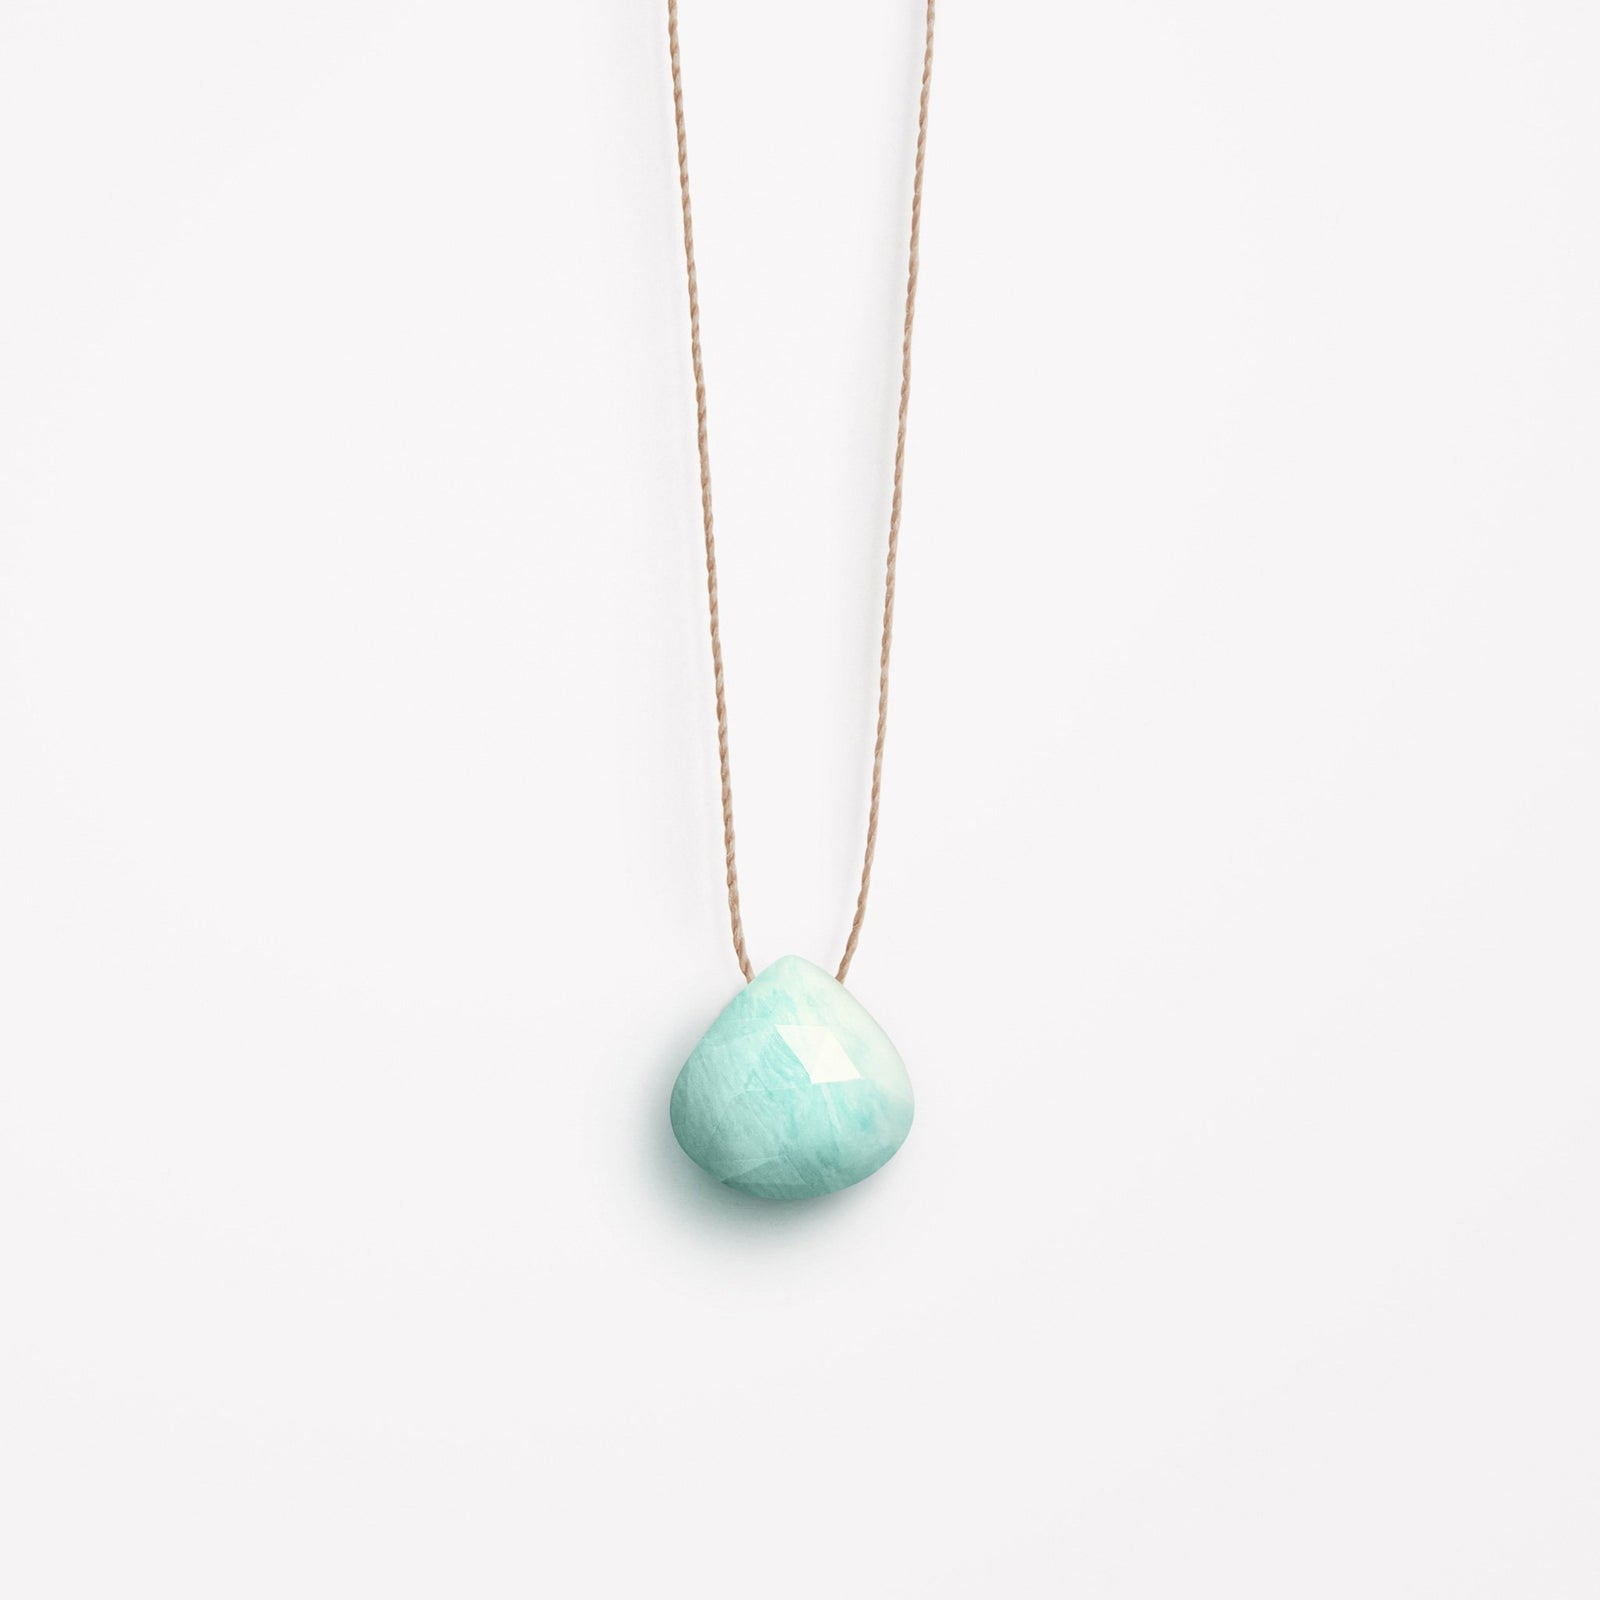 Wanderlust Life Ethically Handmade jewellery made in the UK. Minimalist gold and fine cord jewellery. amazonite fine cord necklace